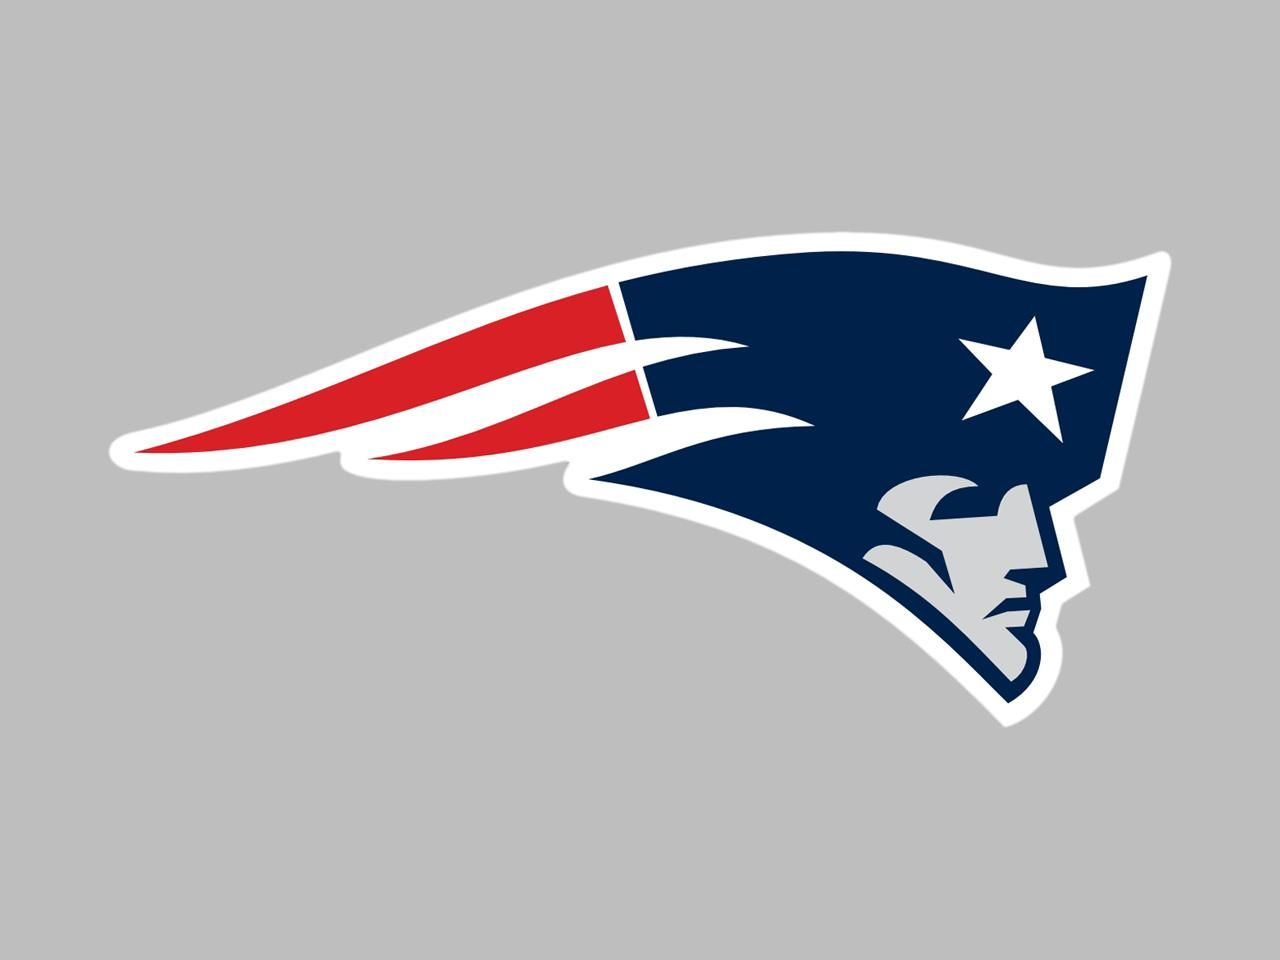 History Of The New England Patriots New England Patriots New England Patriots Wallpaper New England Patriots Football